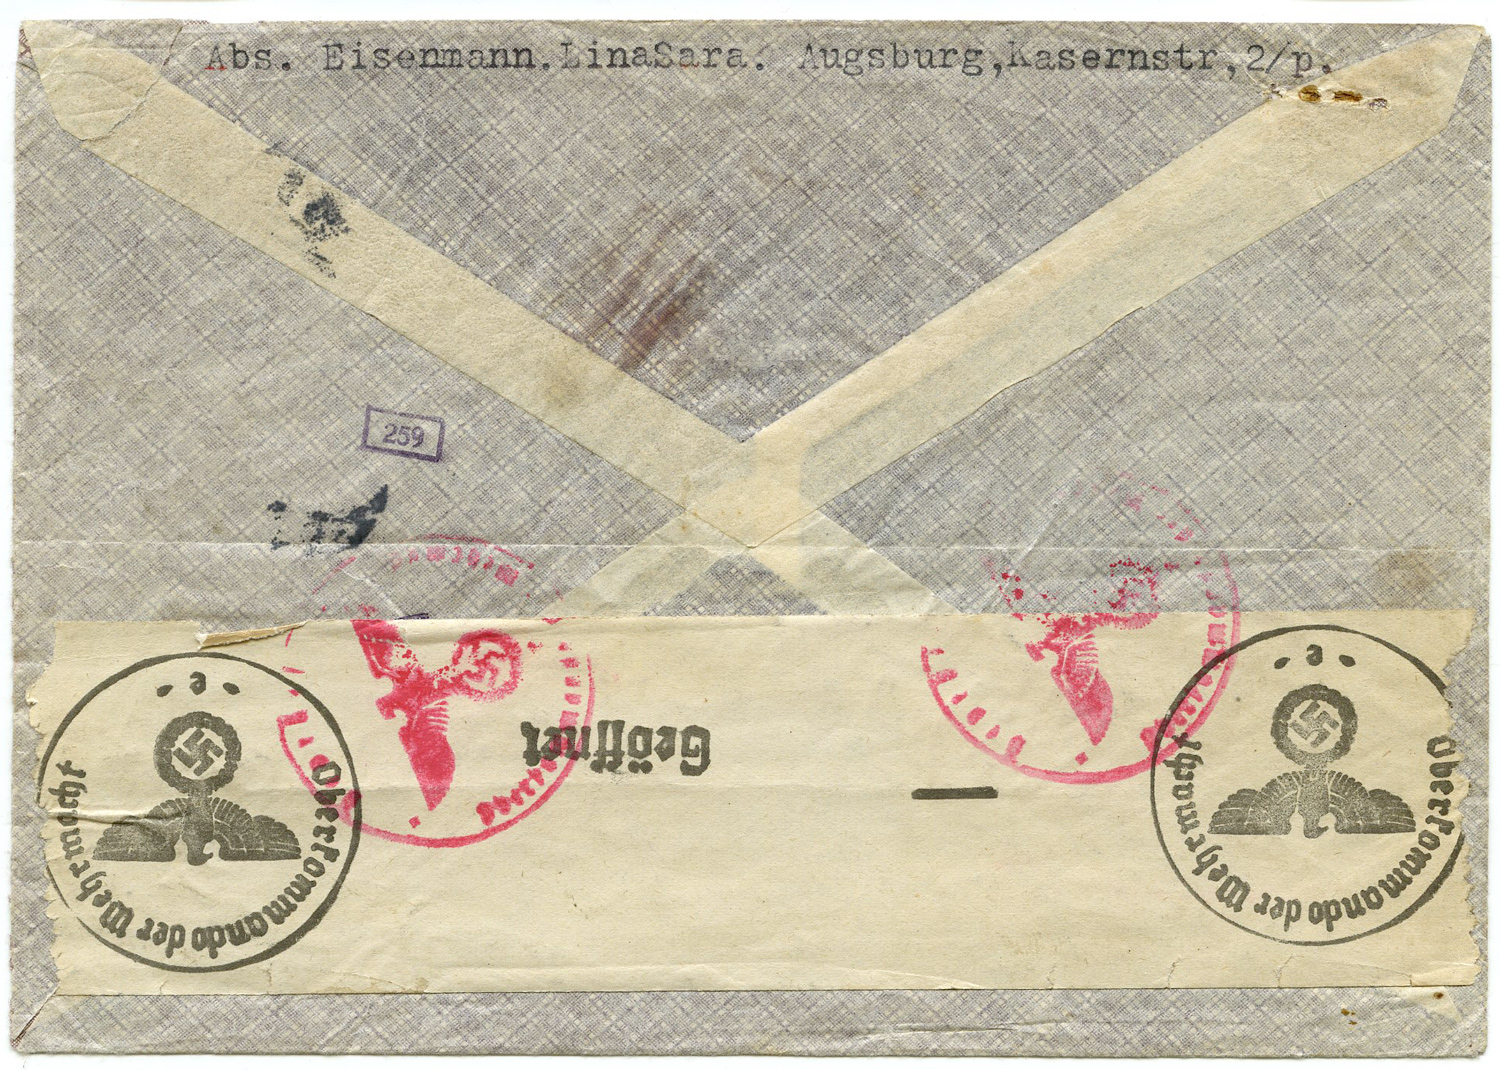 Eisenmann Envelope Back